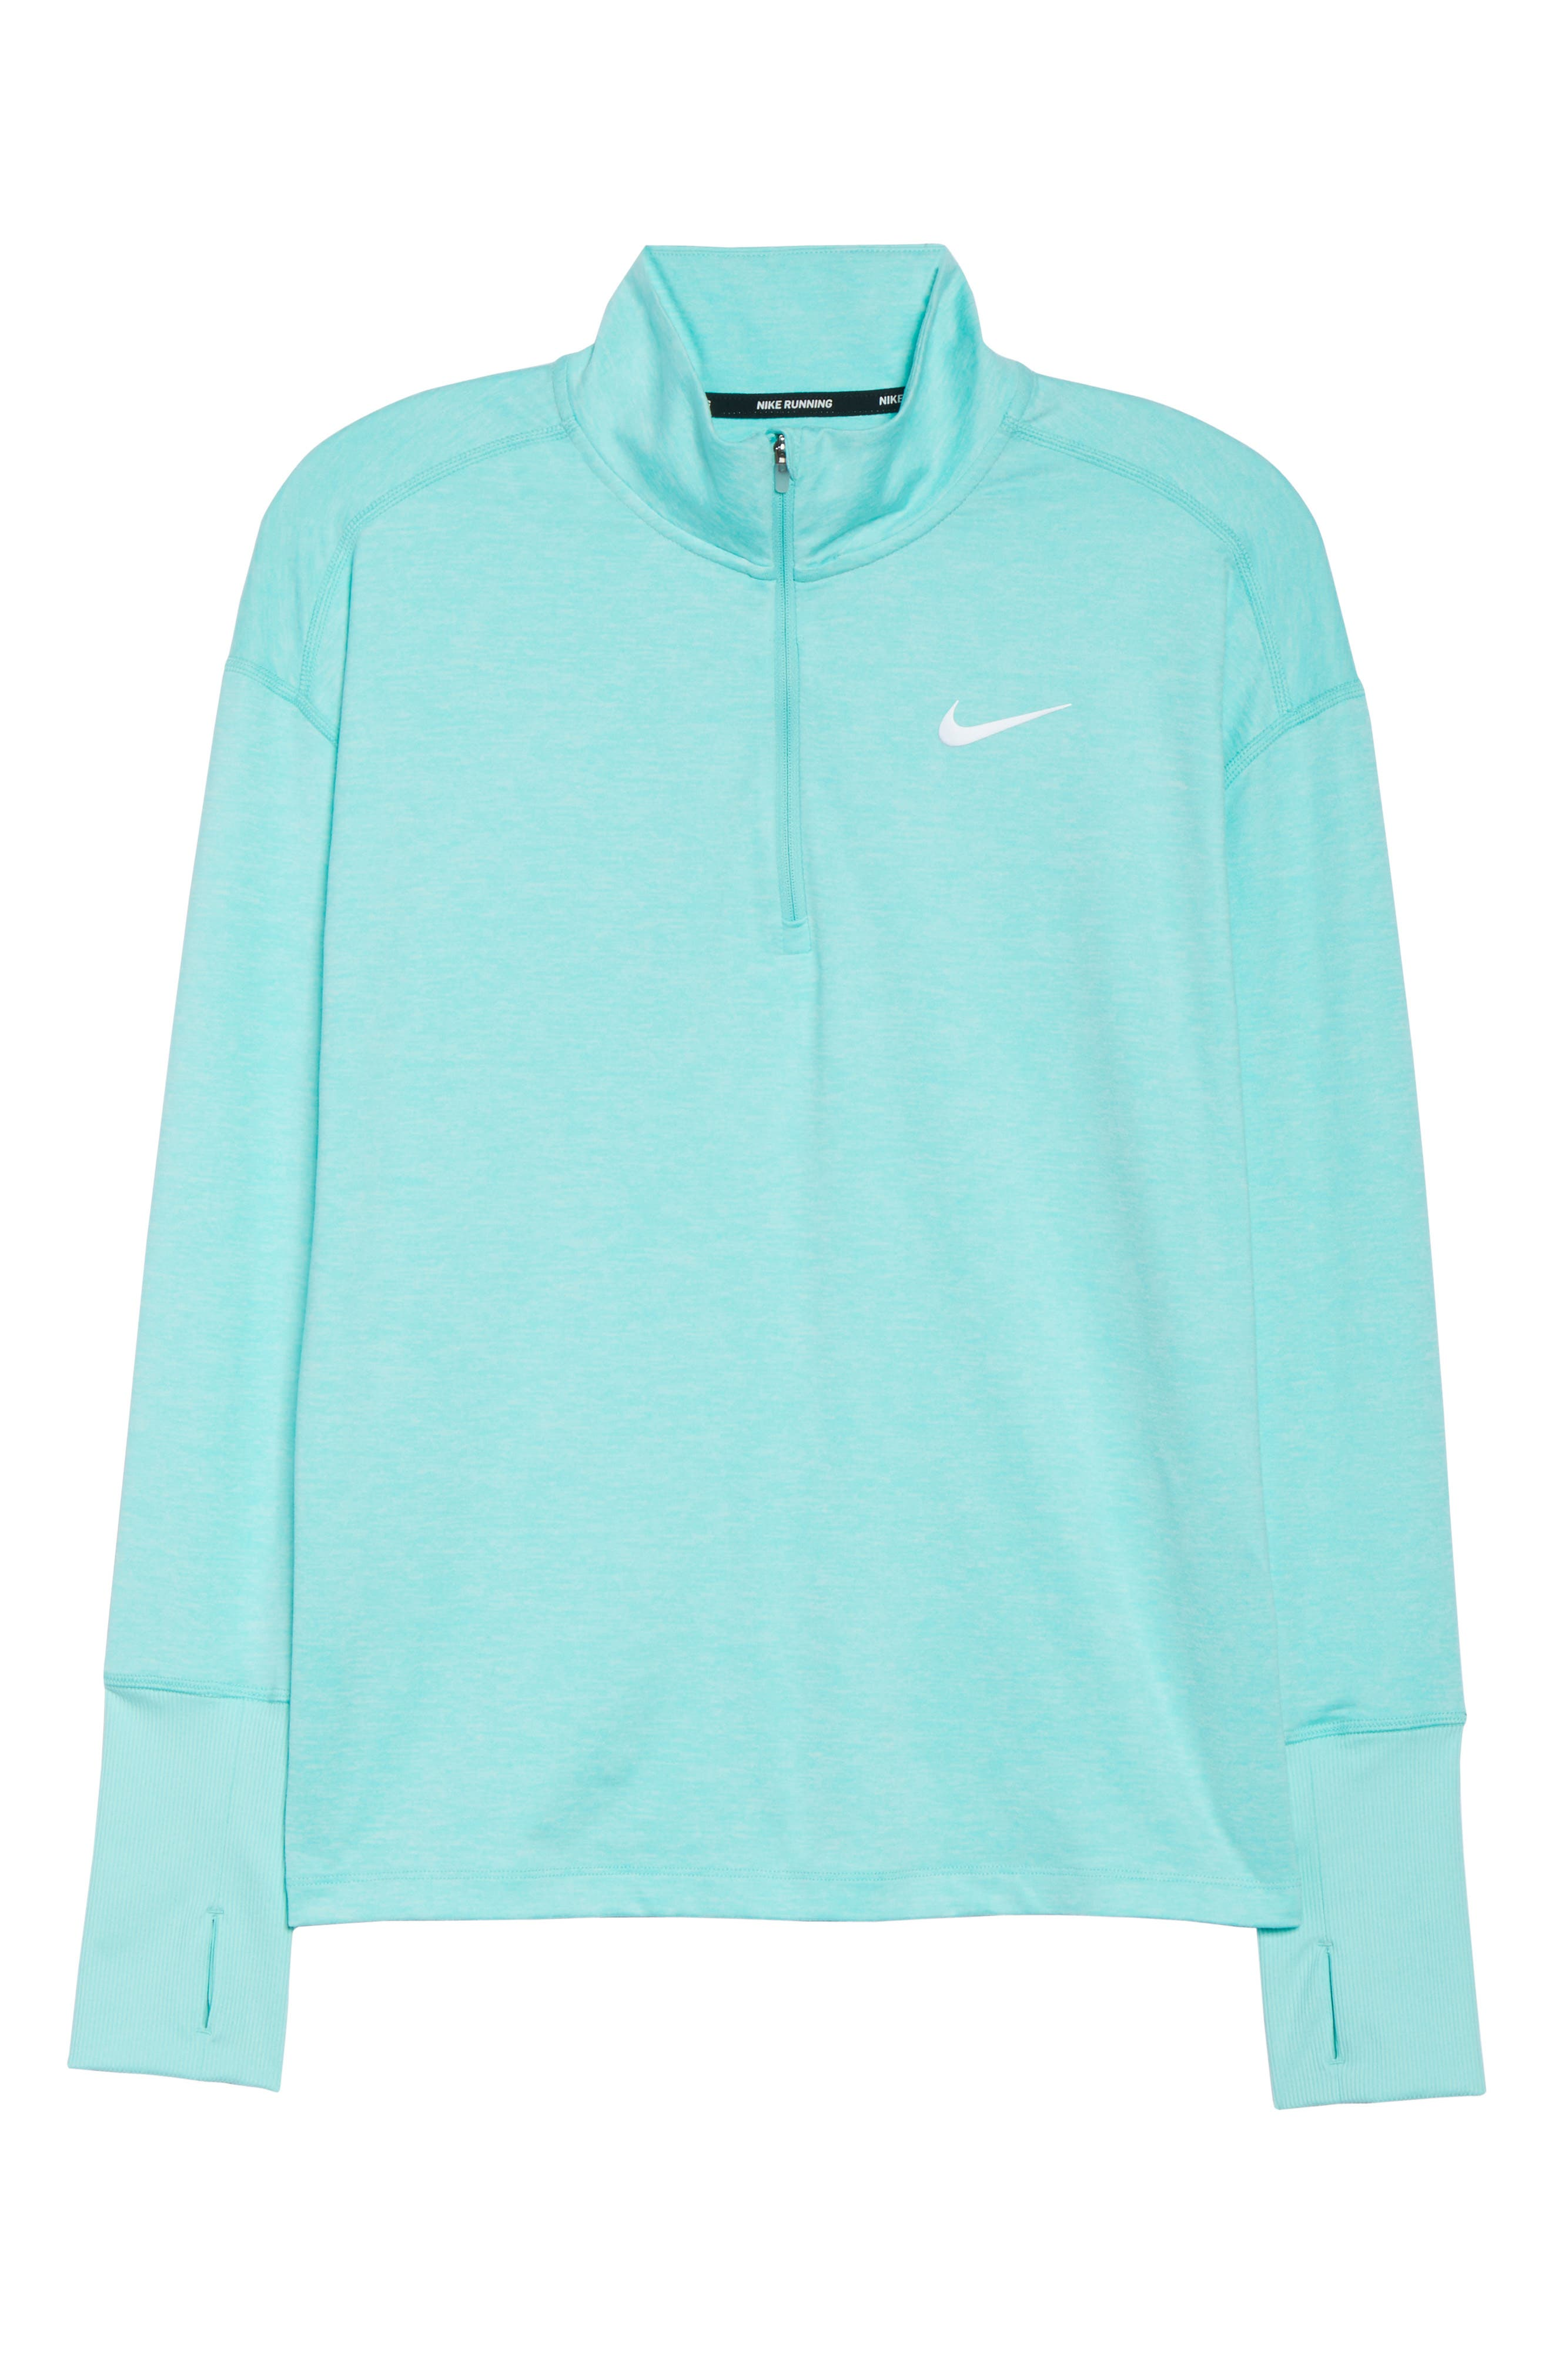 Element Long-Sleeve Running Top,                             Alternate thumbnail 7, color,                             TROPICAL TWIST/ TEAL TINT